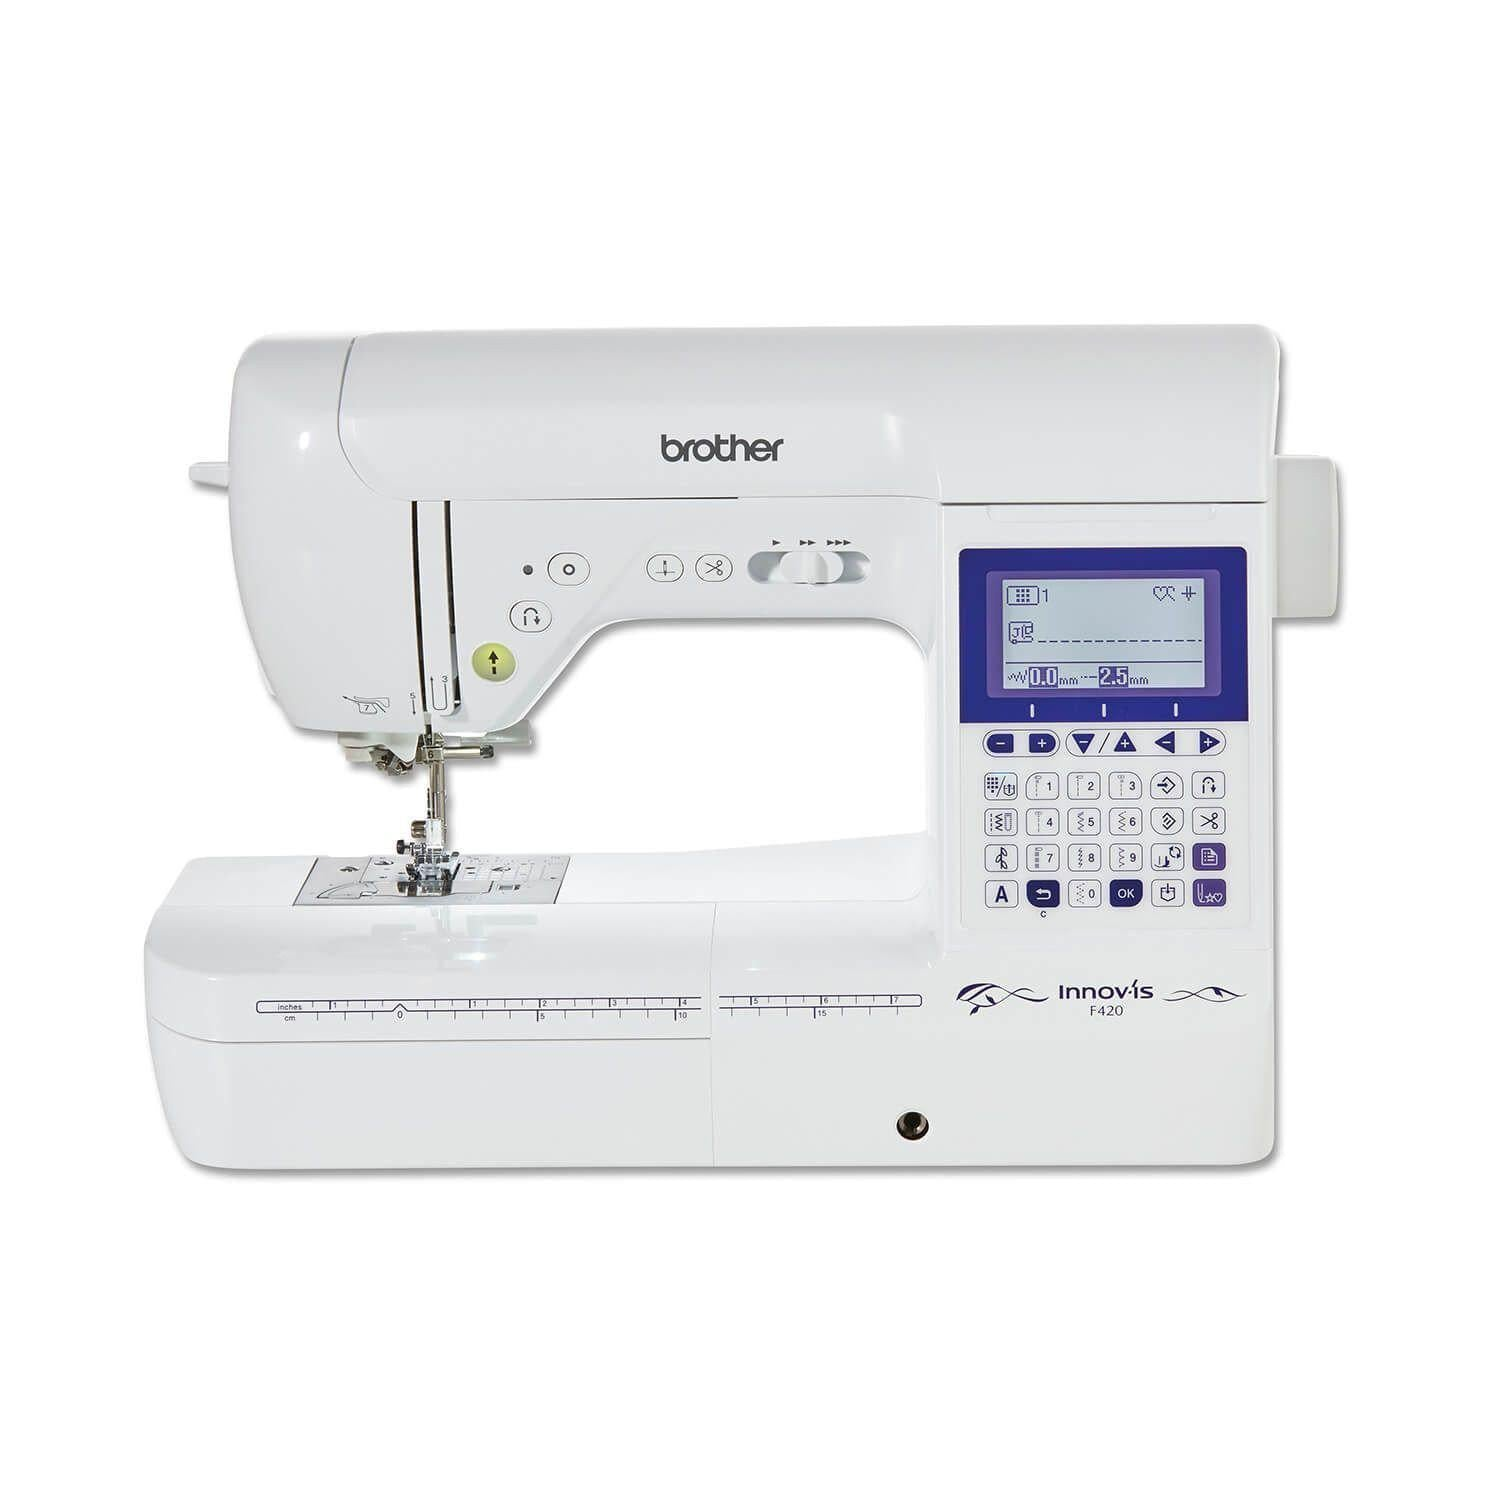 Brother Innovis F420 - Free Creative Quilt Kit until July 31st! Brother Sewing Machines - Fabric Mouse